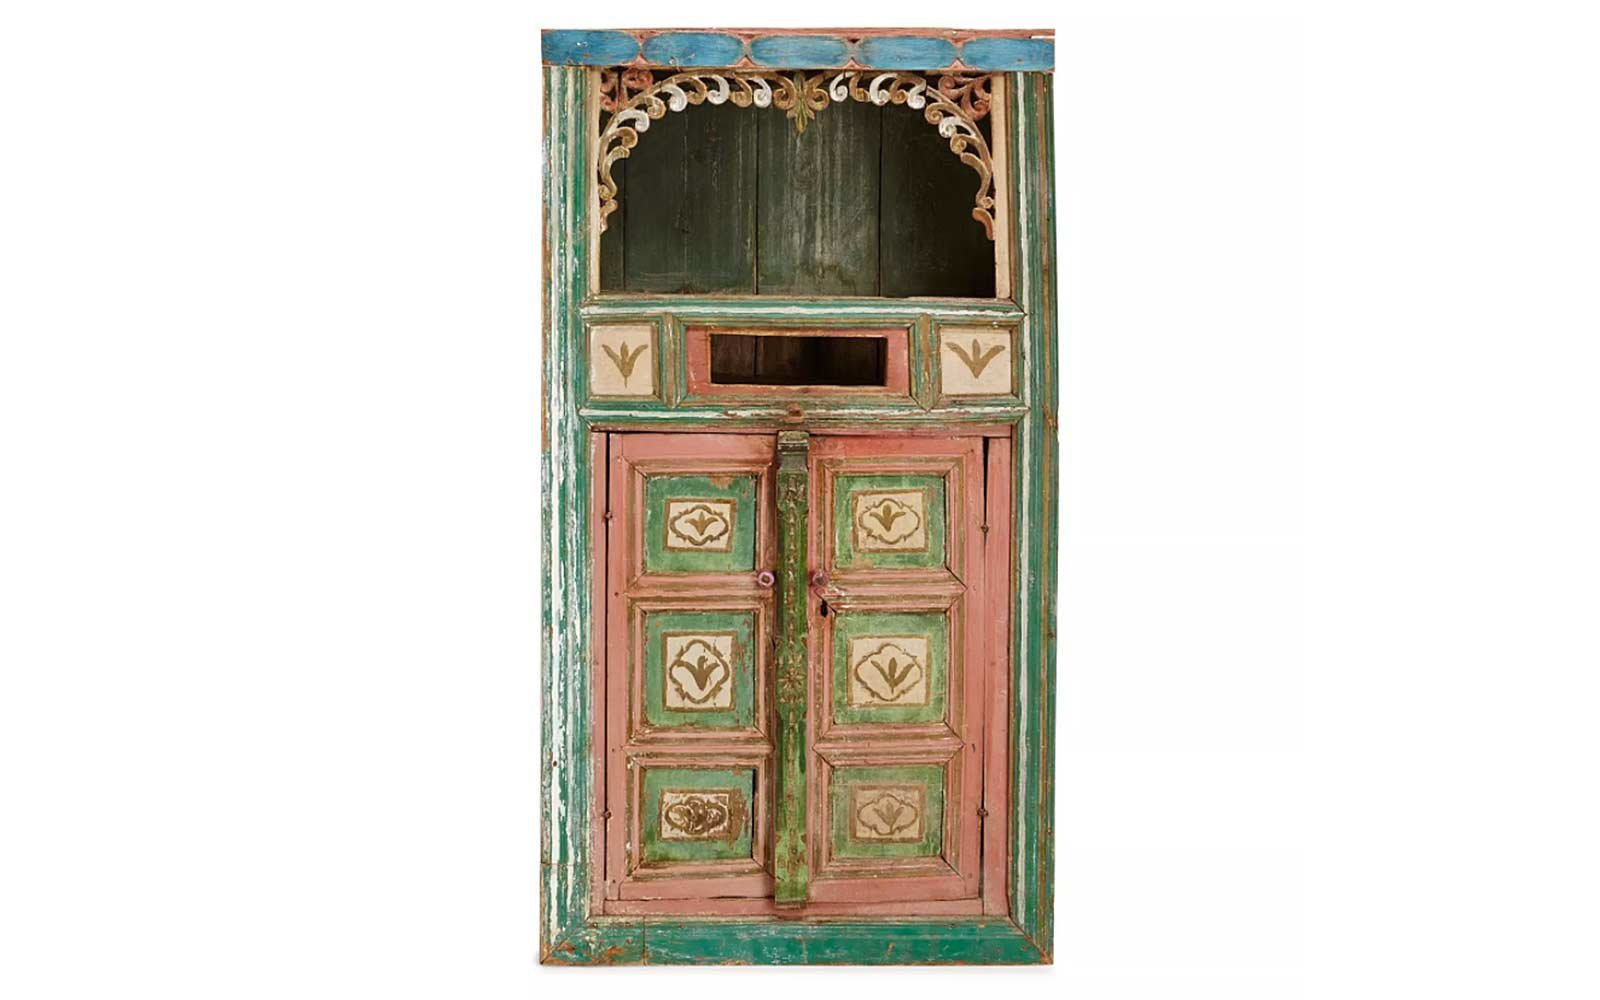 Home products company decorating ideas news amp media download contact - How To Make Your House Look Like Istanbul